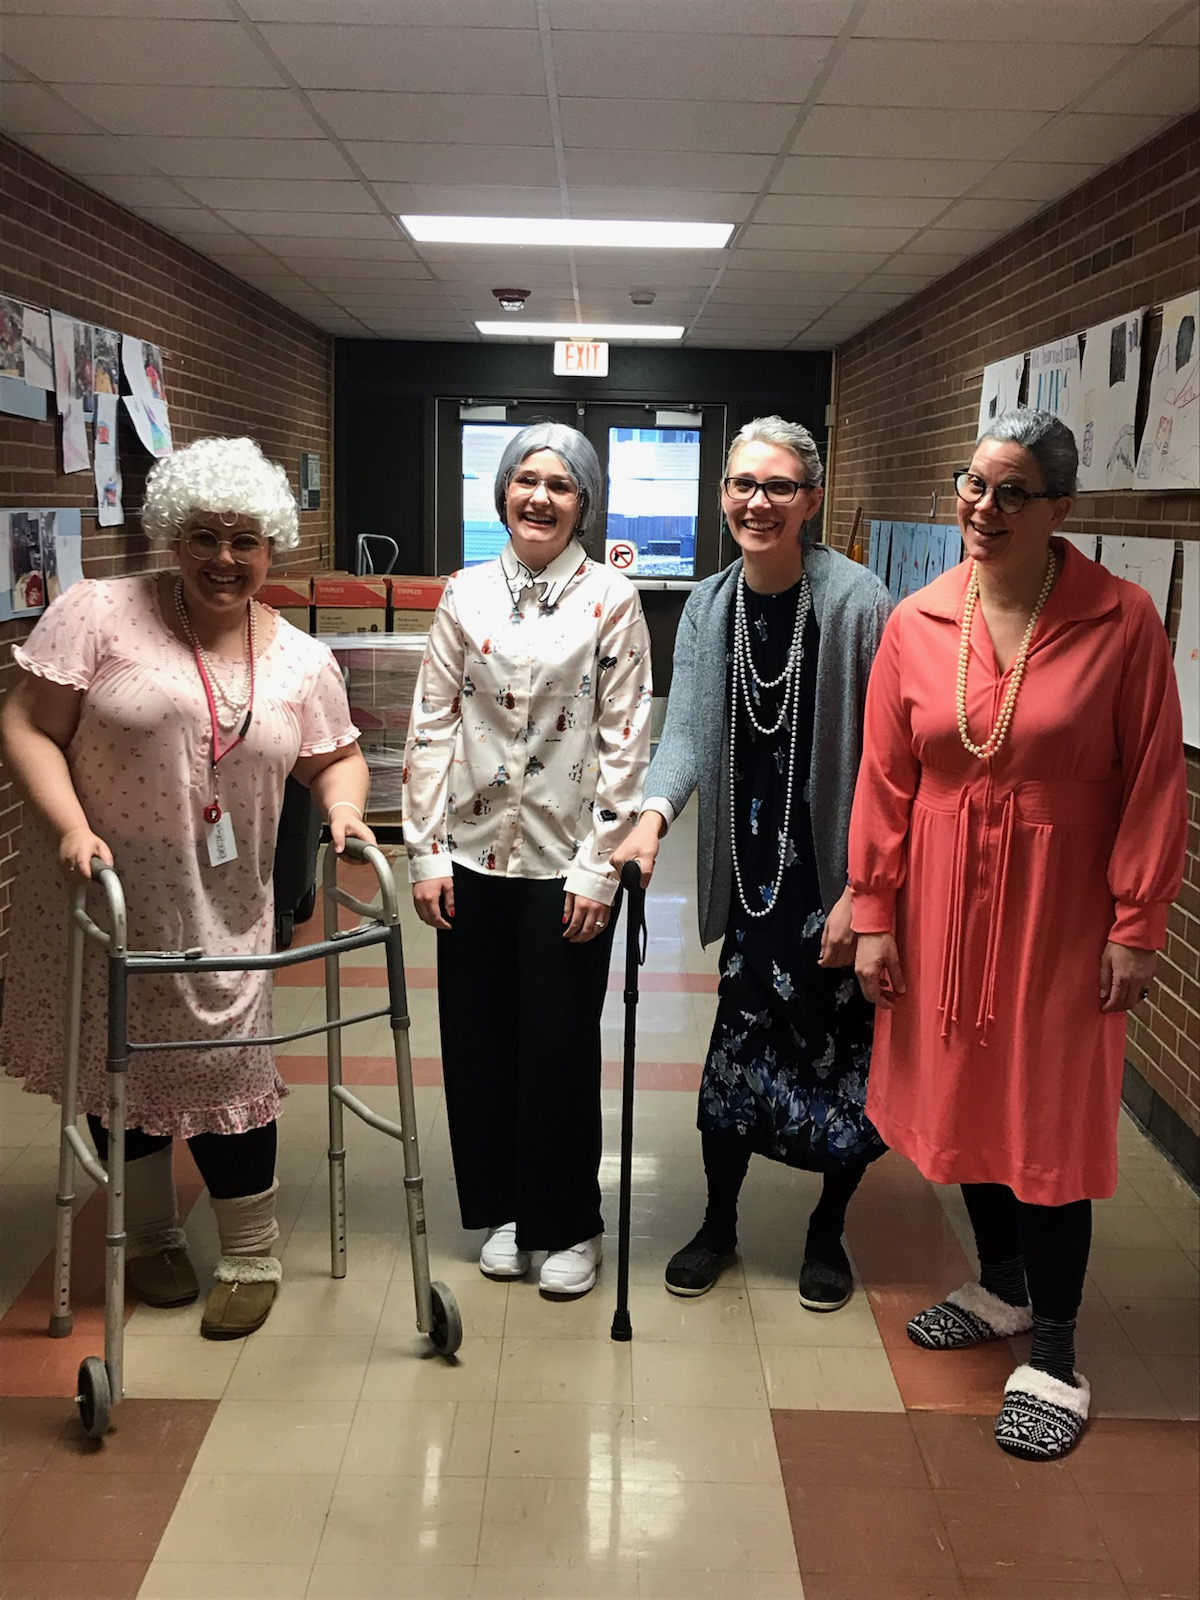 Students in Kindergarten celebrated the 100th day of school! It was a blast! Students participated in counting to 100, 100th day art, stories, and other fun! Photo Credit: Ms. Bellah